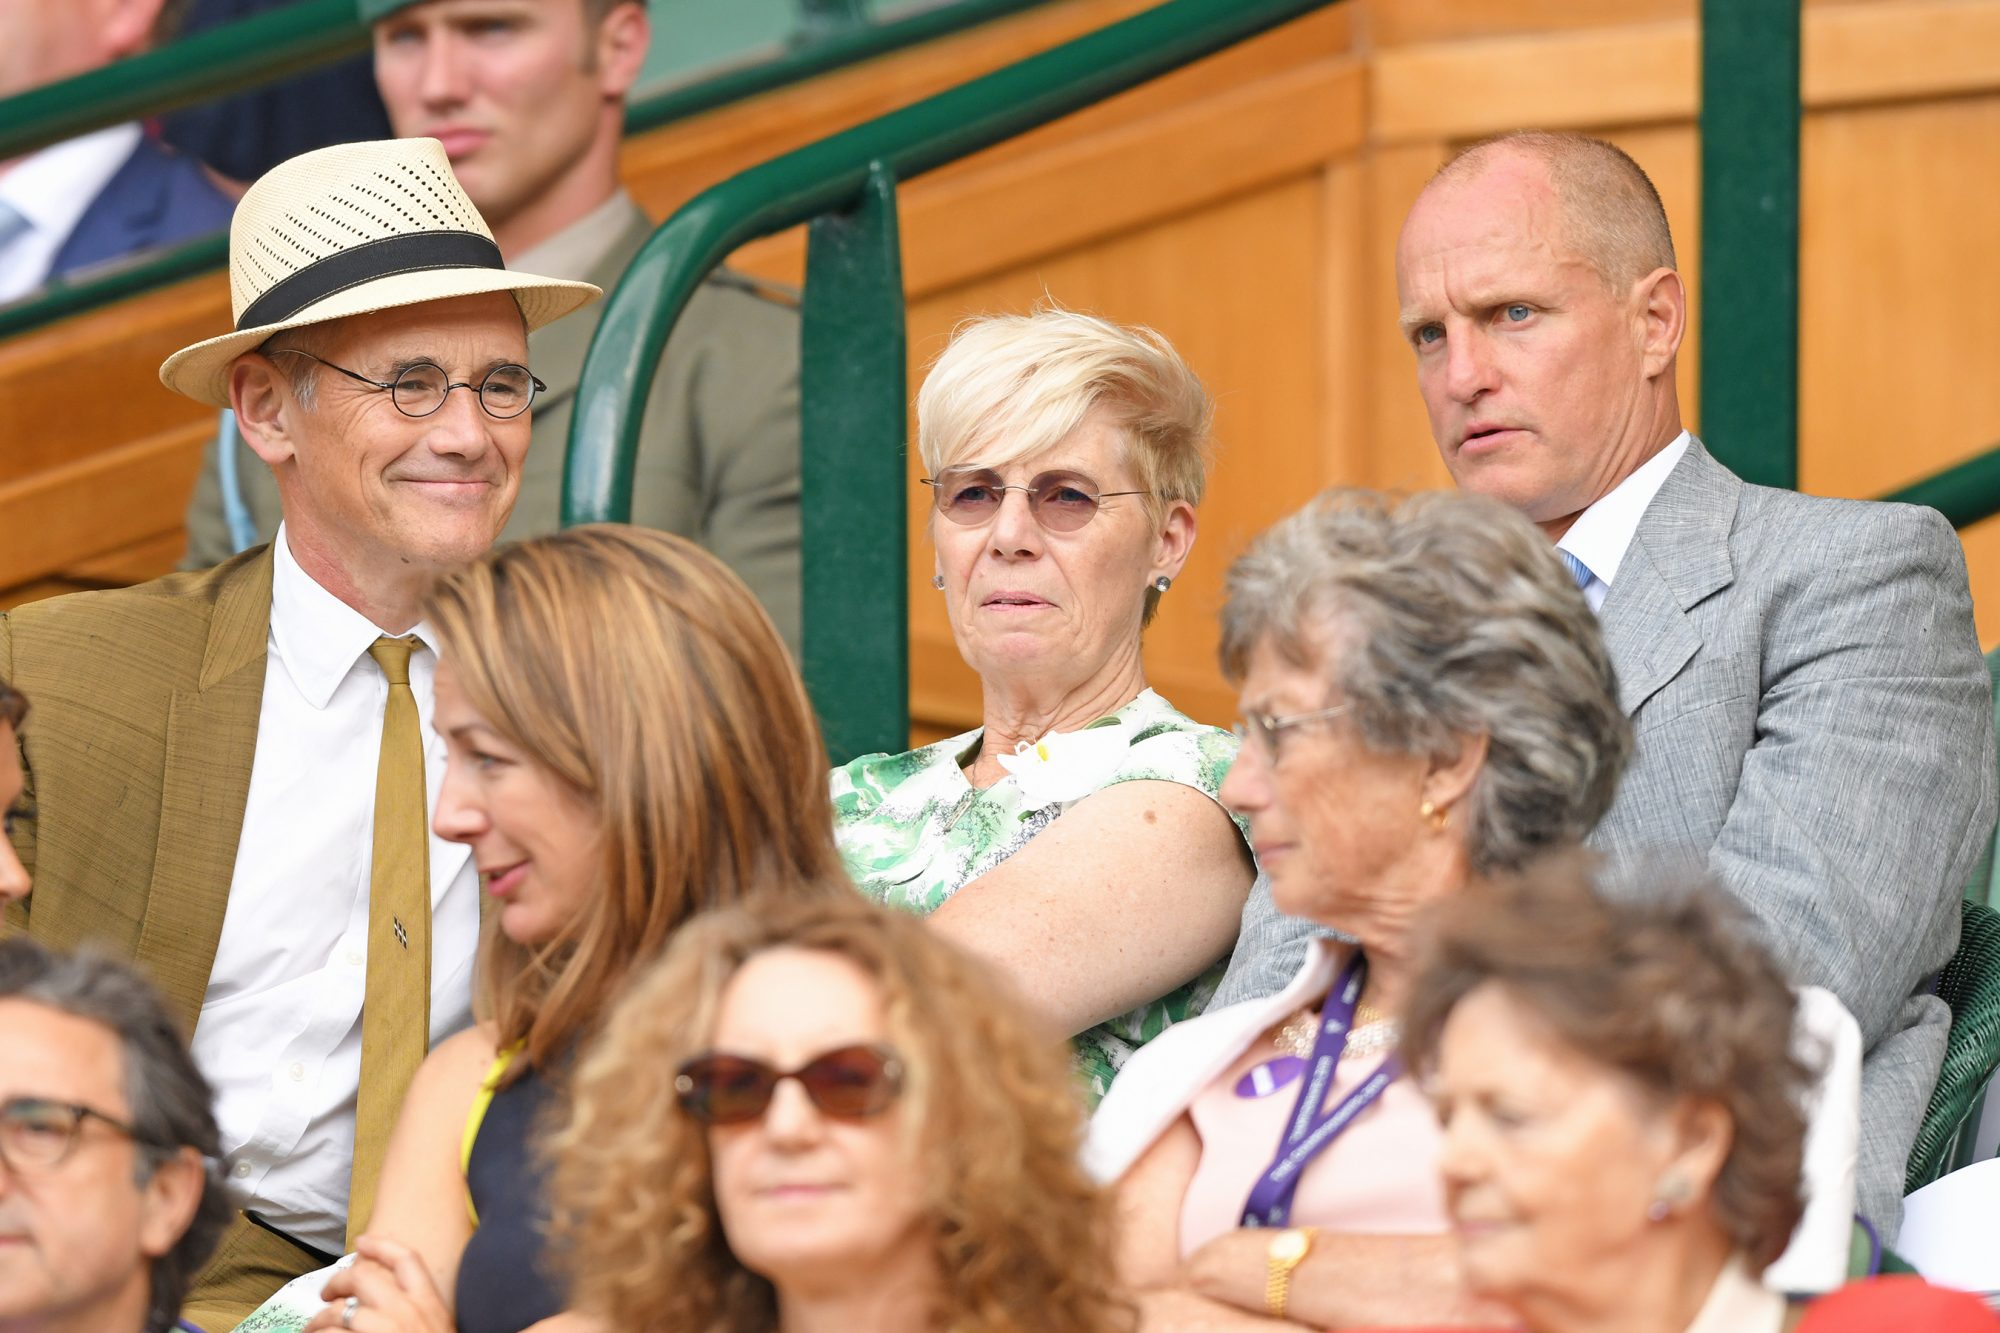 LONDON, ENGLAND - JULY 13: Mark Rylance, Milena Gabanelli and Woody Harrelson in the Royal Box on Centre Court during day twelve of the Wimbledon Tennis Championships at All England Lawn Tennis and Croquet Club on July 13, 2019 in London, England. (Photo by Karwai Tang/Getty Images)